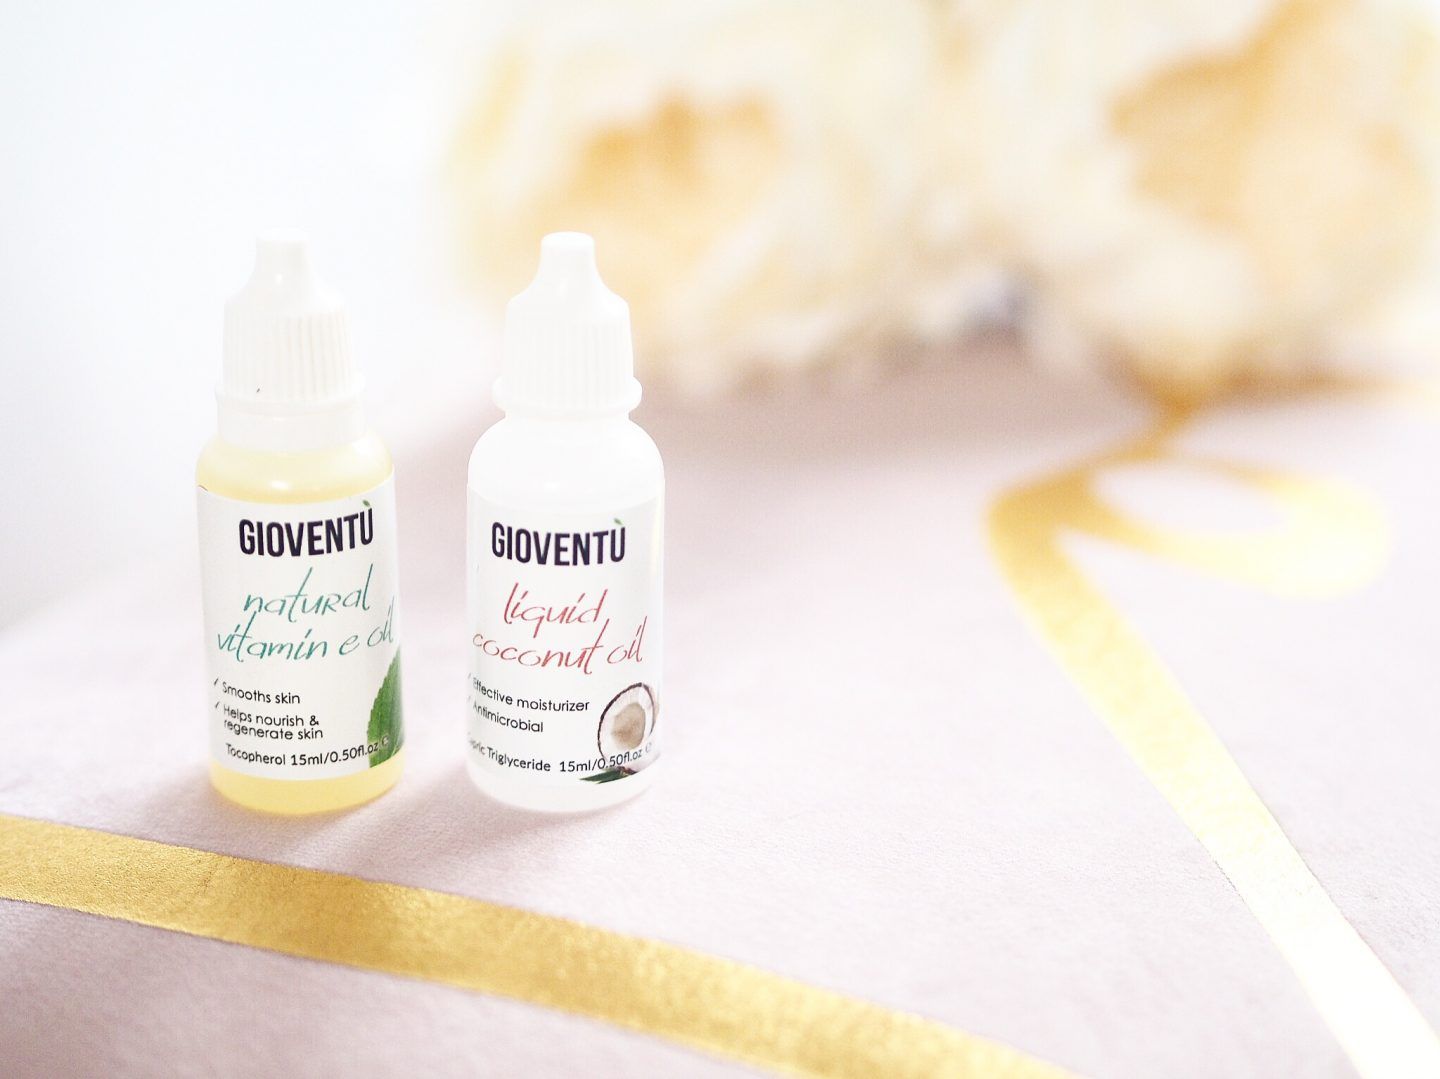 Gioventu Natural Vitamin Oil And Coconut Oil Put To The Test